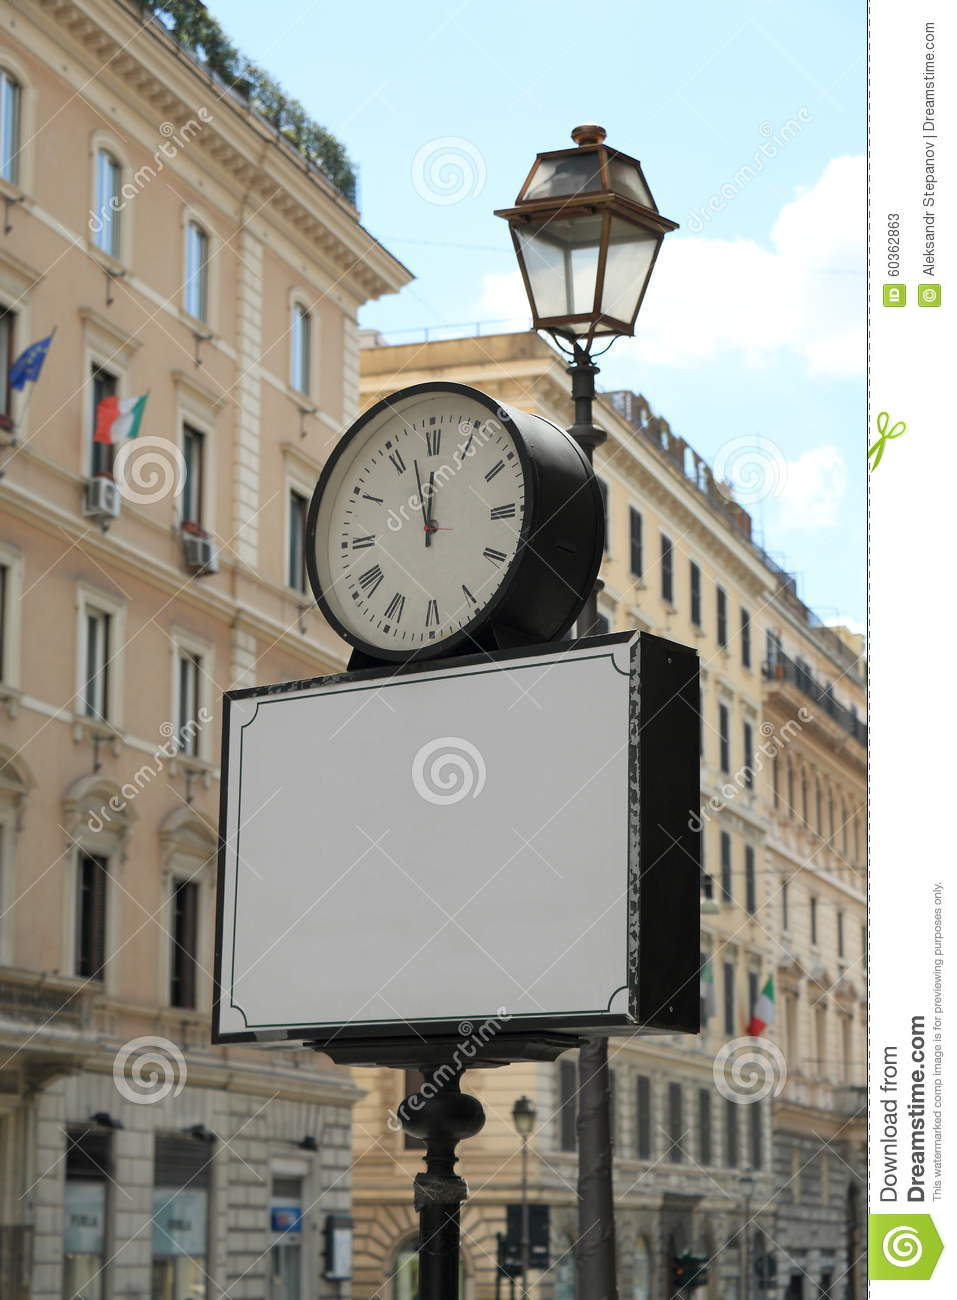 Blank Banner With Clock On Street In Italy Stock Image